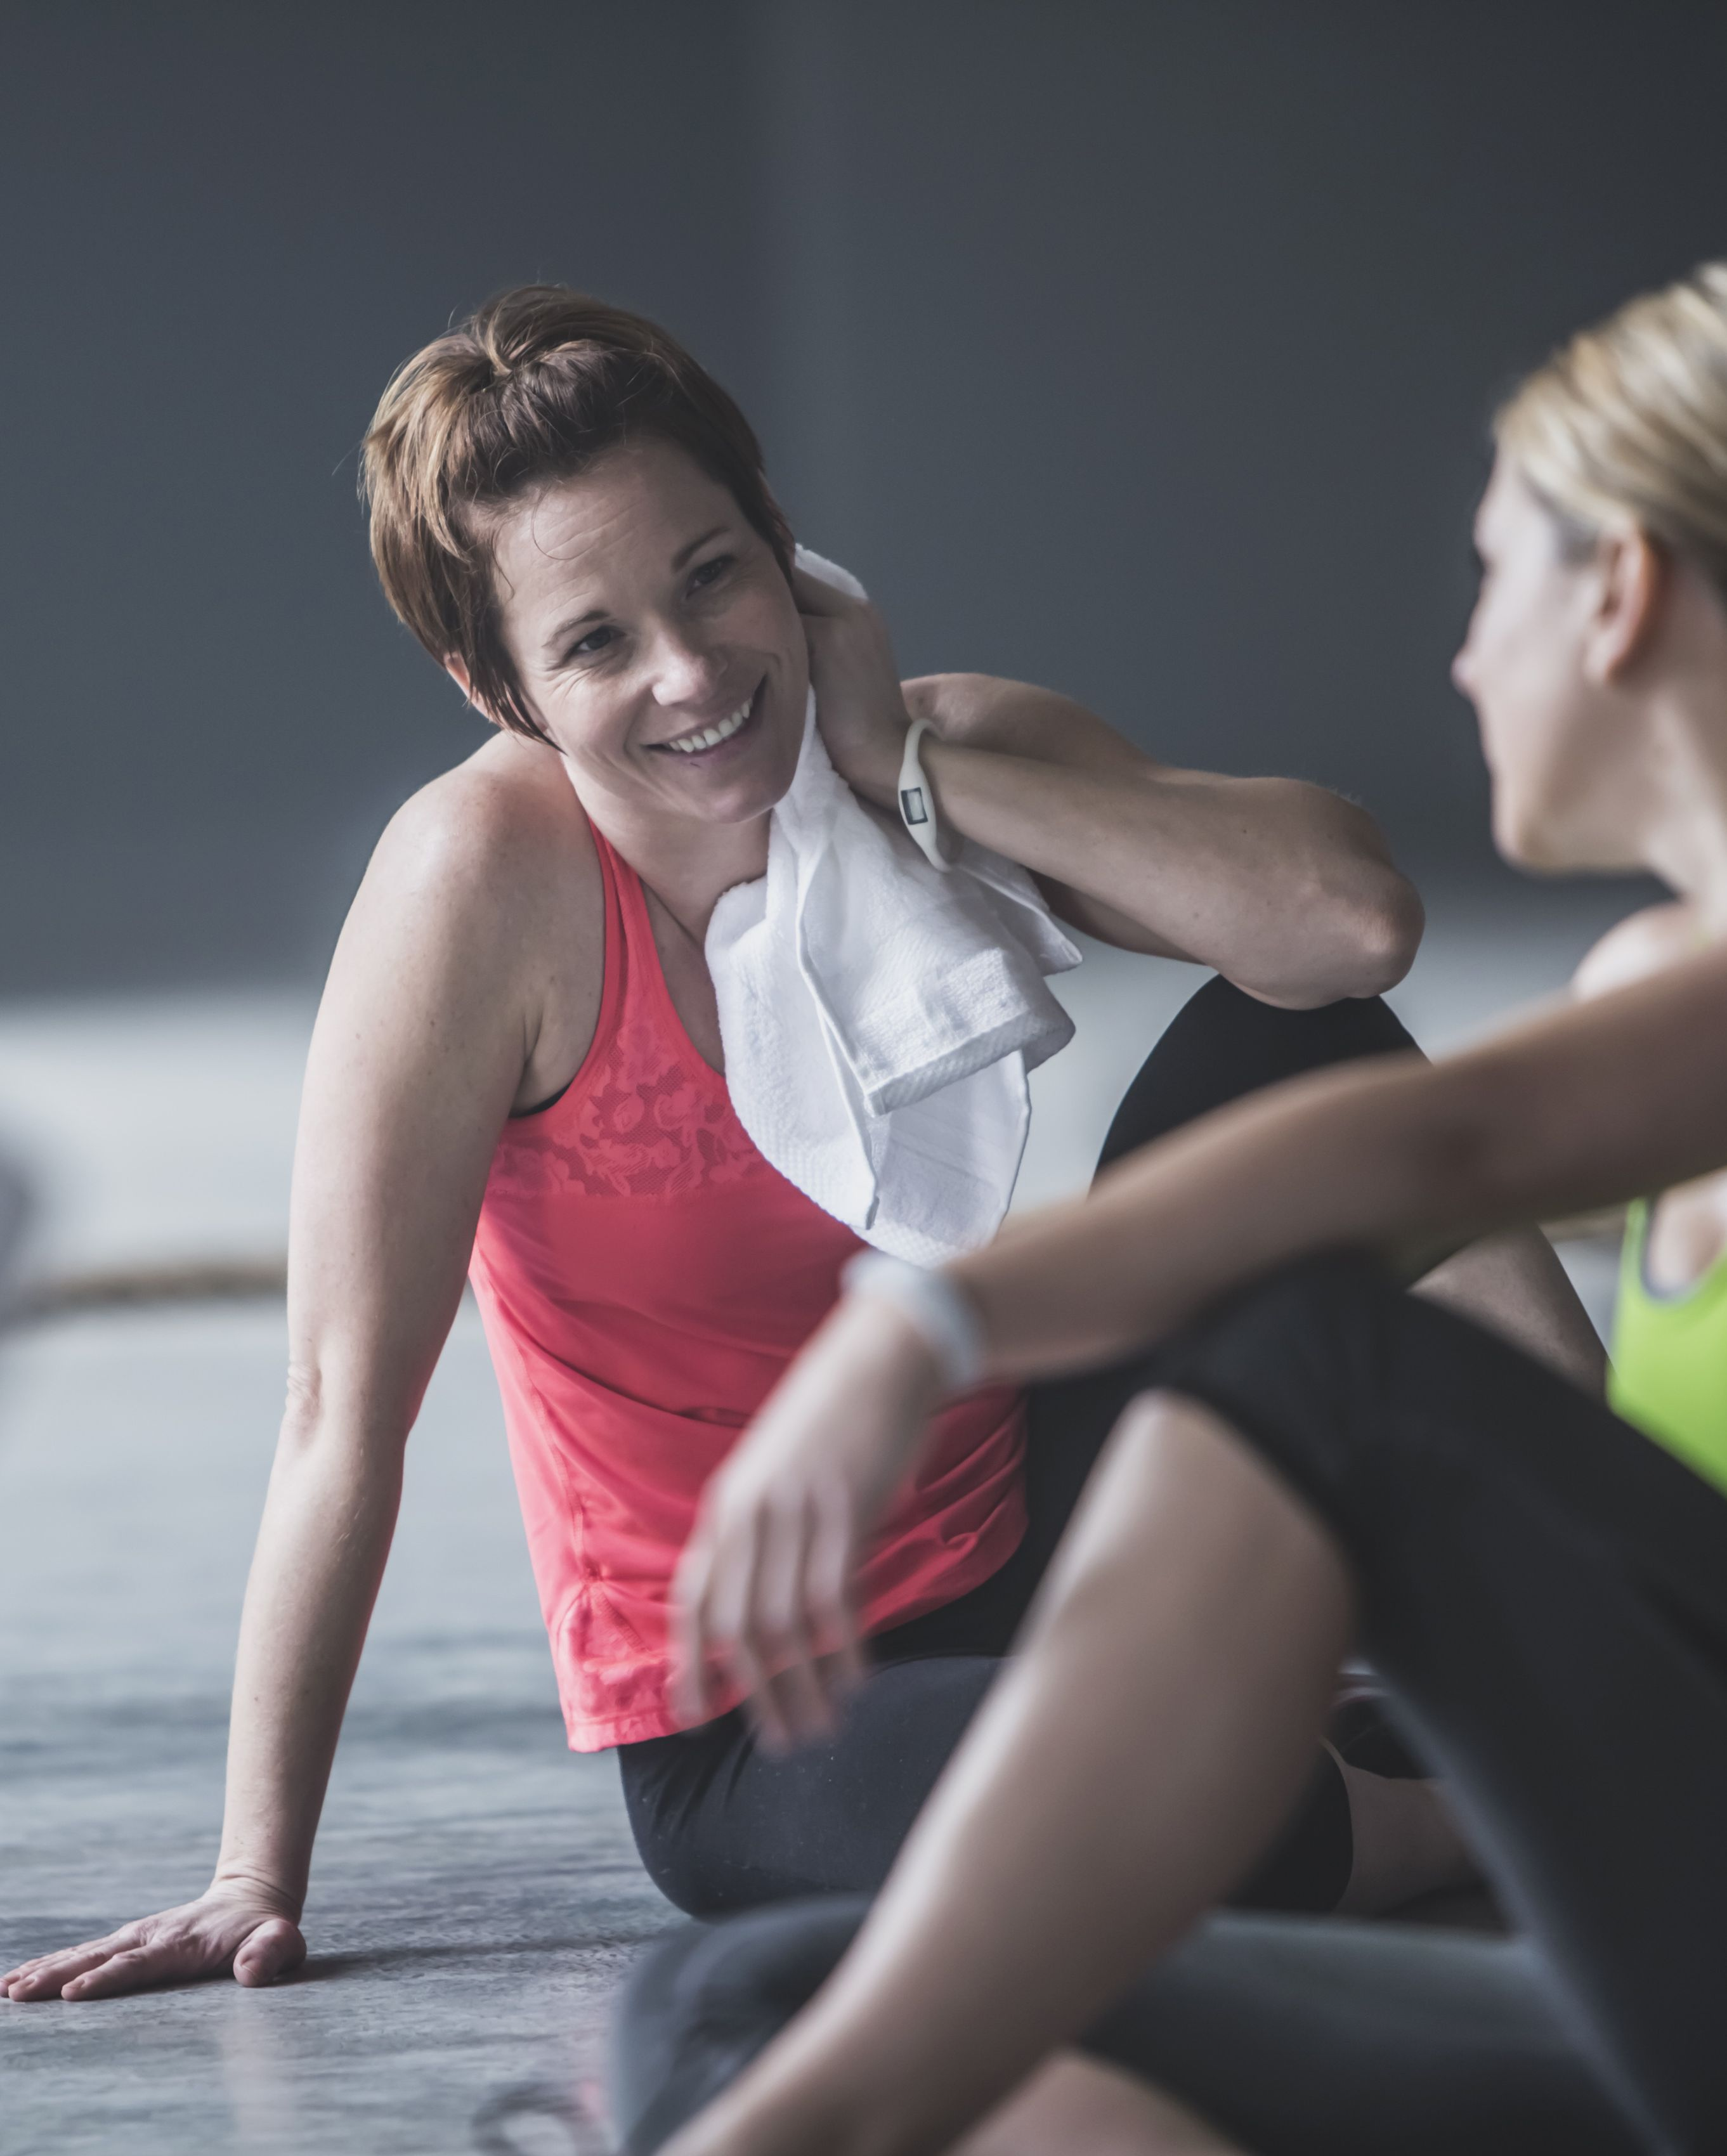 Never give someone unsolicited advice. No matter what your qualifications are, it's never cool to intrude on someone's workout space, especially when they aren't looking for your opinion.